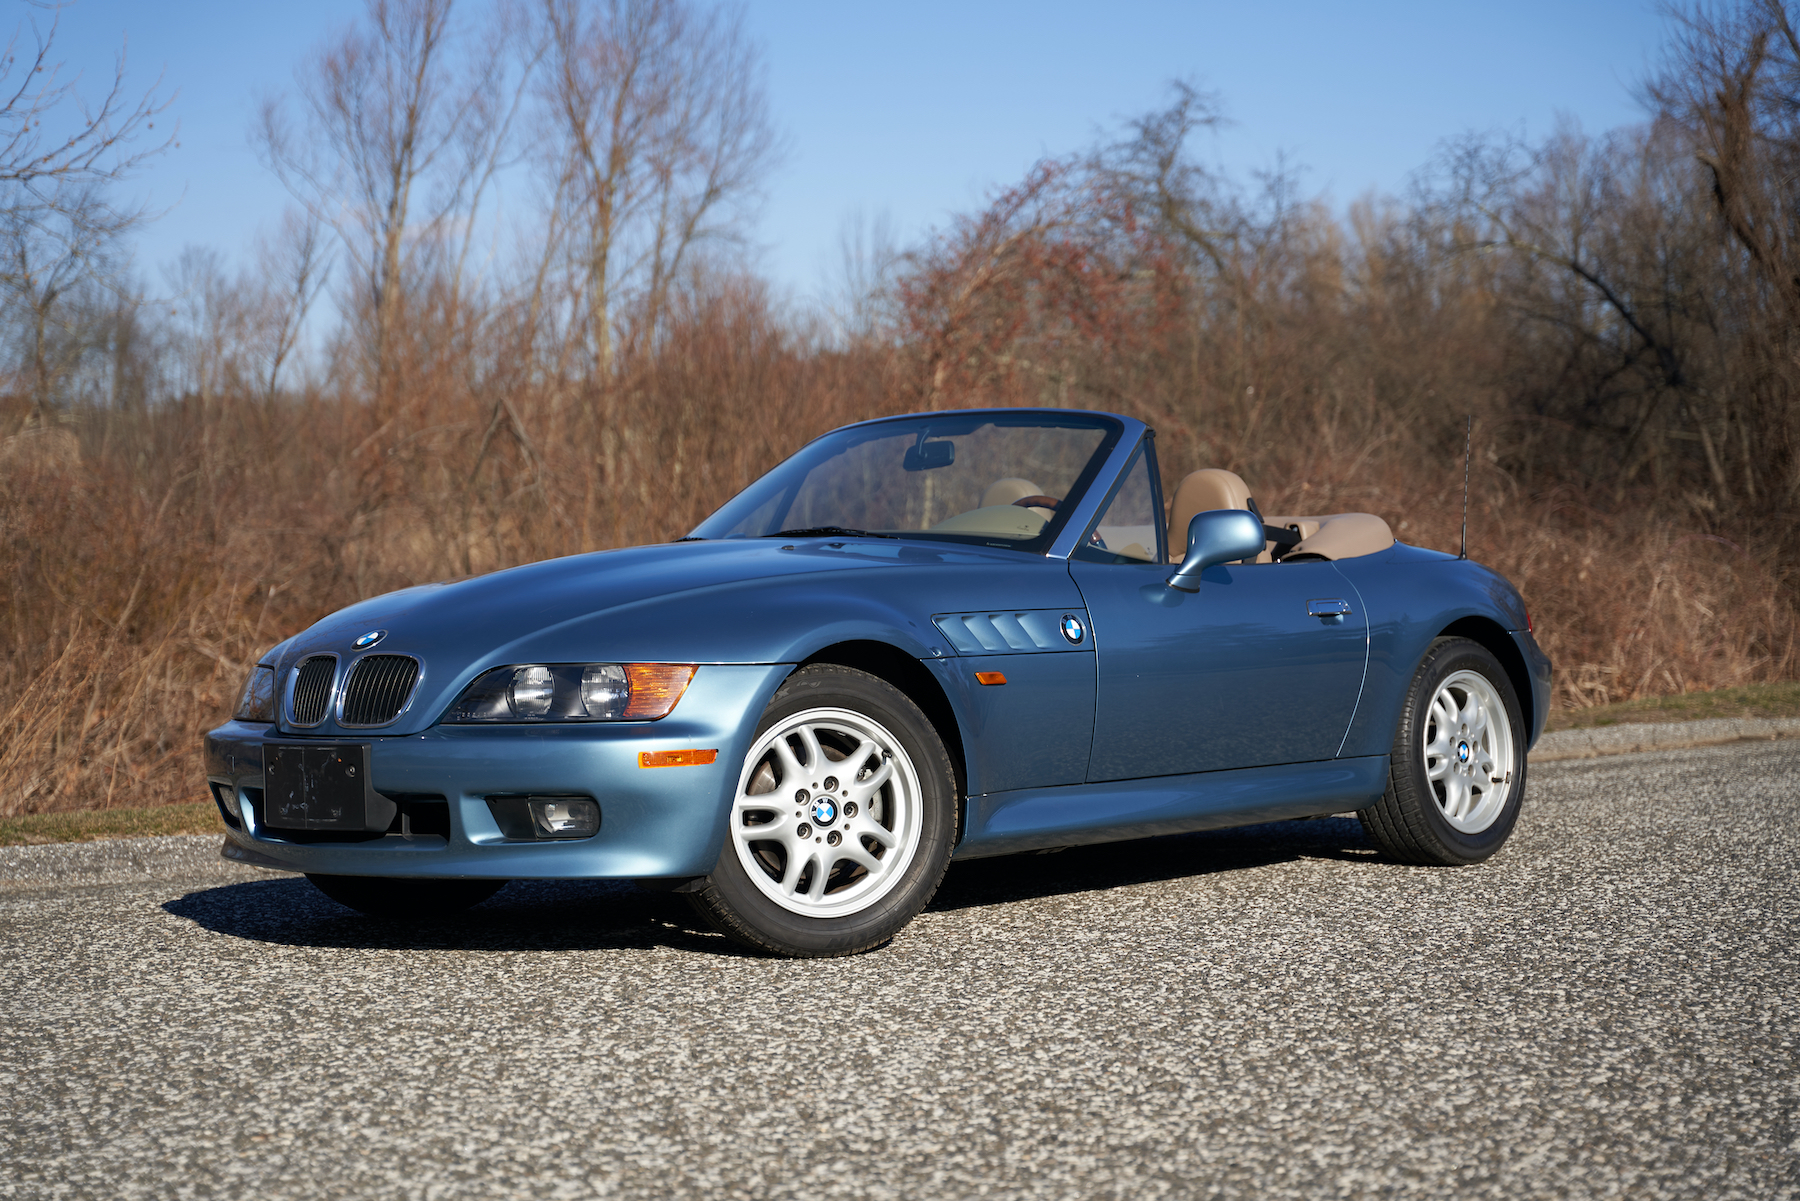 7,600 miles from new.  James Bond edition.  BMW Z3 Roadster.